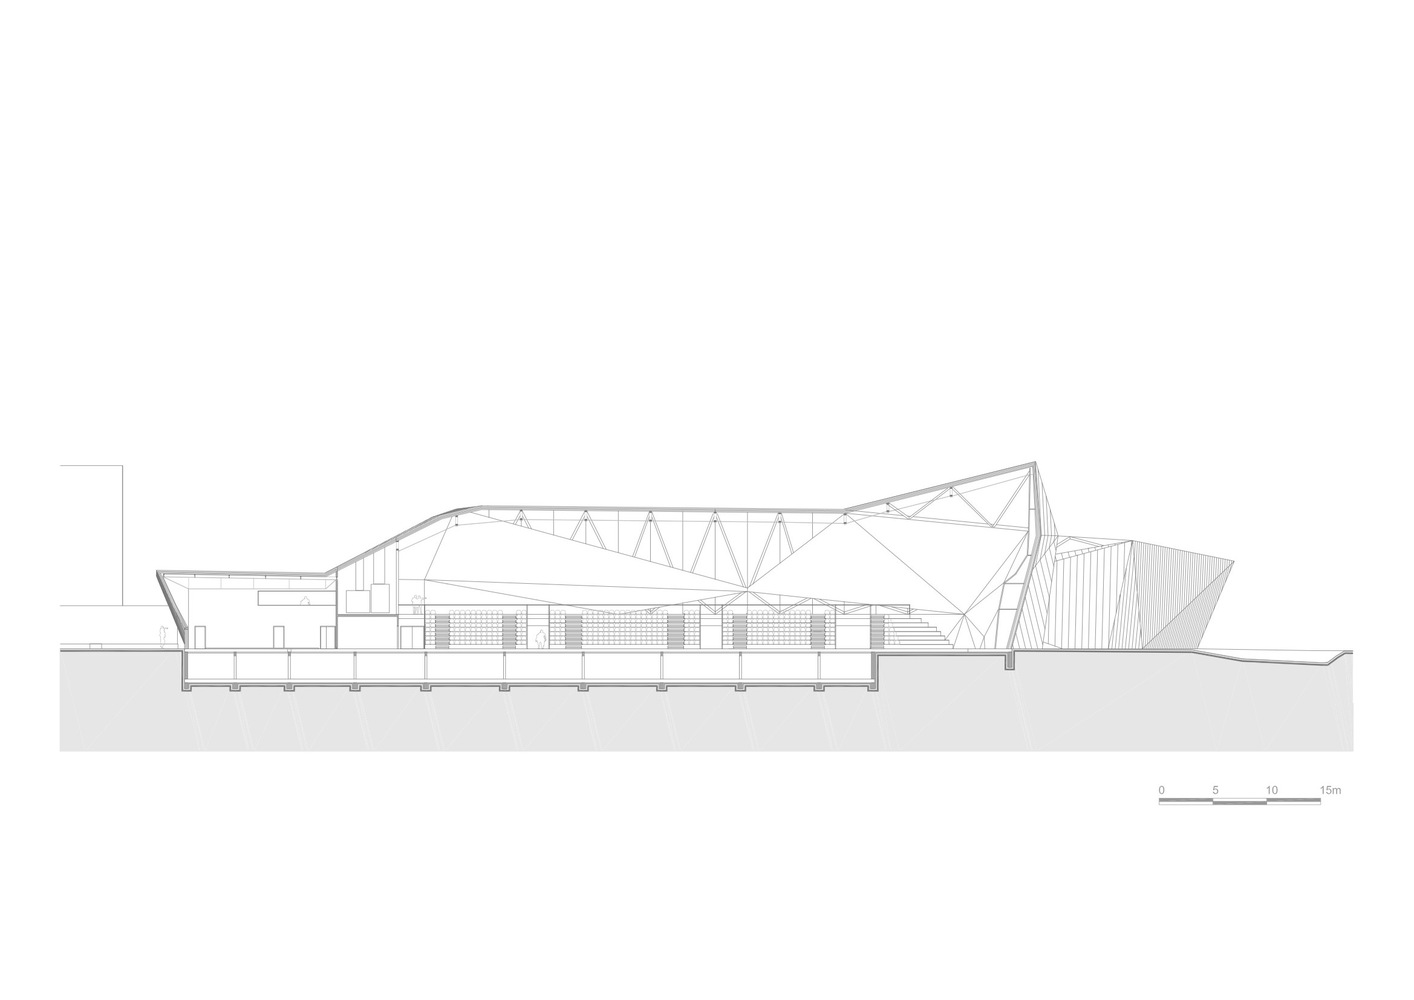 archi5-Antony-LafontaineMultisportsComplex-Section2.jpg